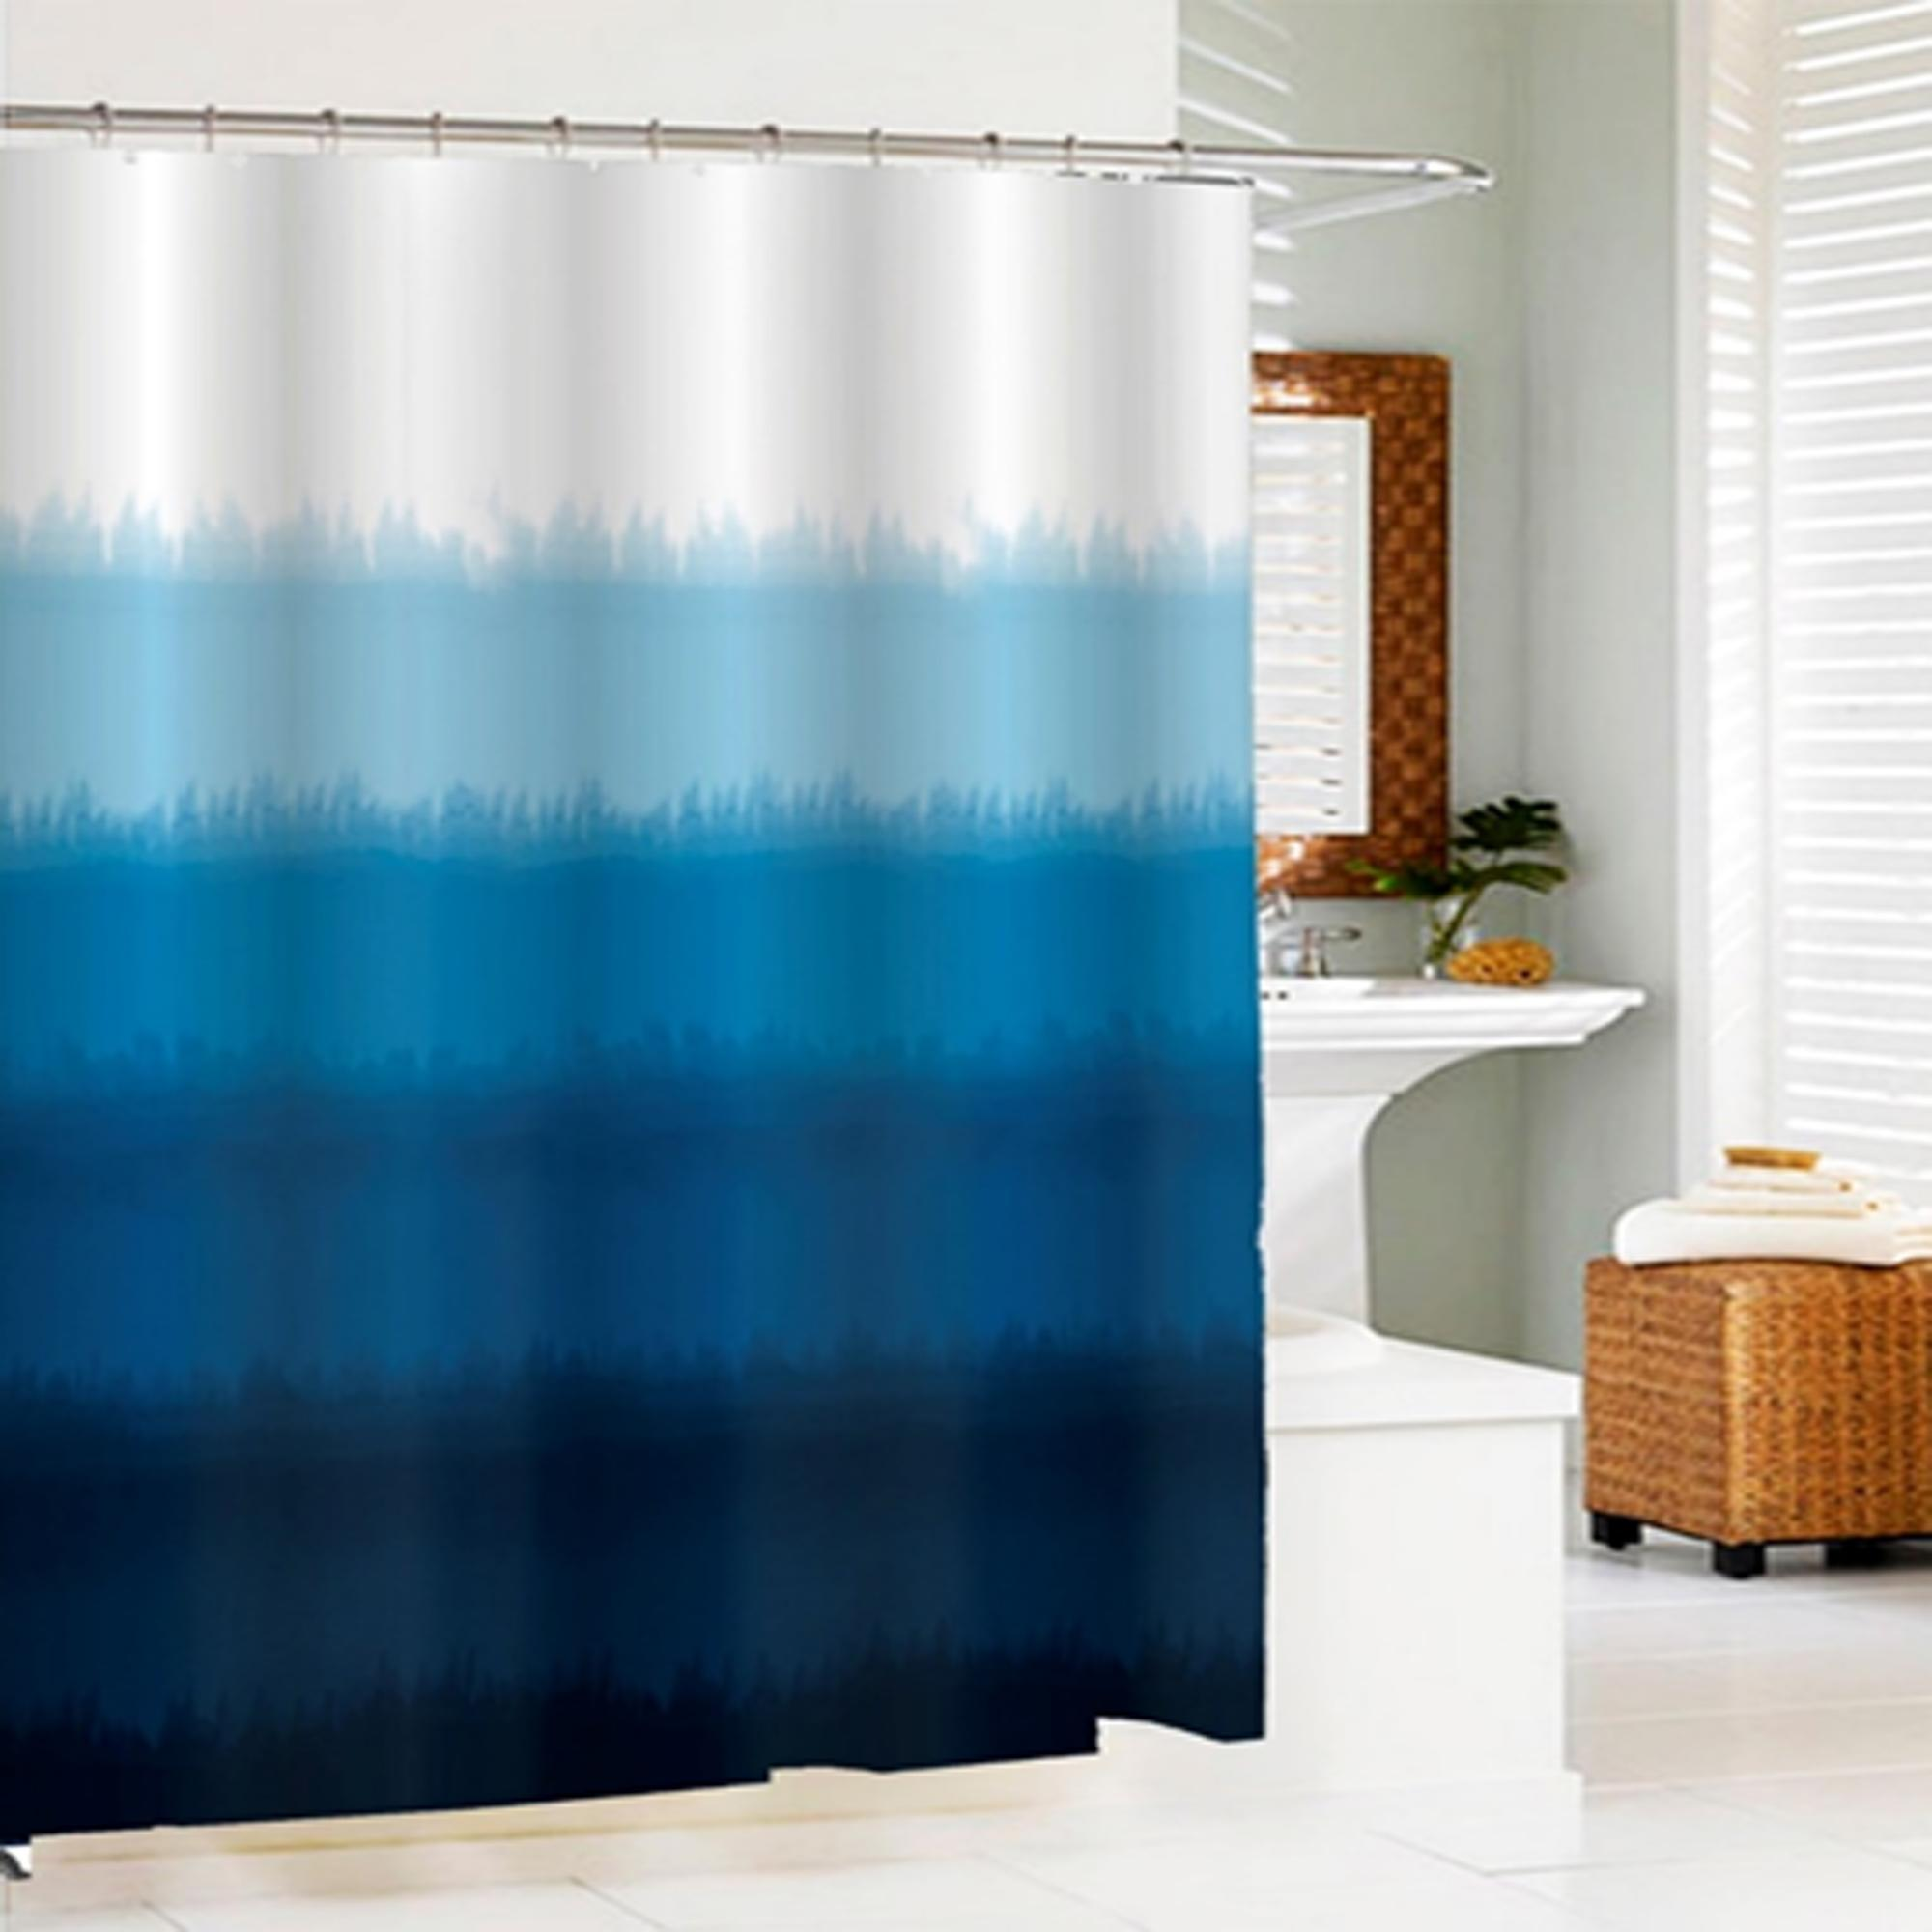 Shower Curtain for sale - Bathrool Curtain prices, brands & review ...